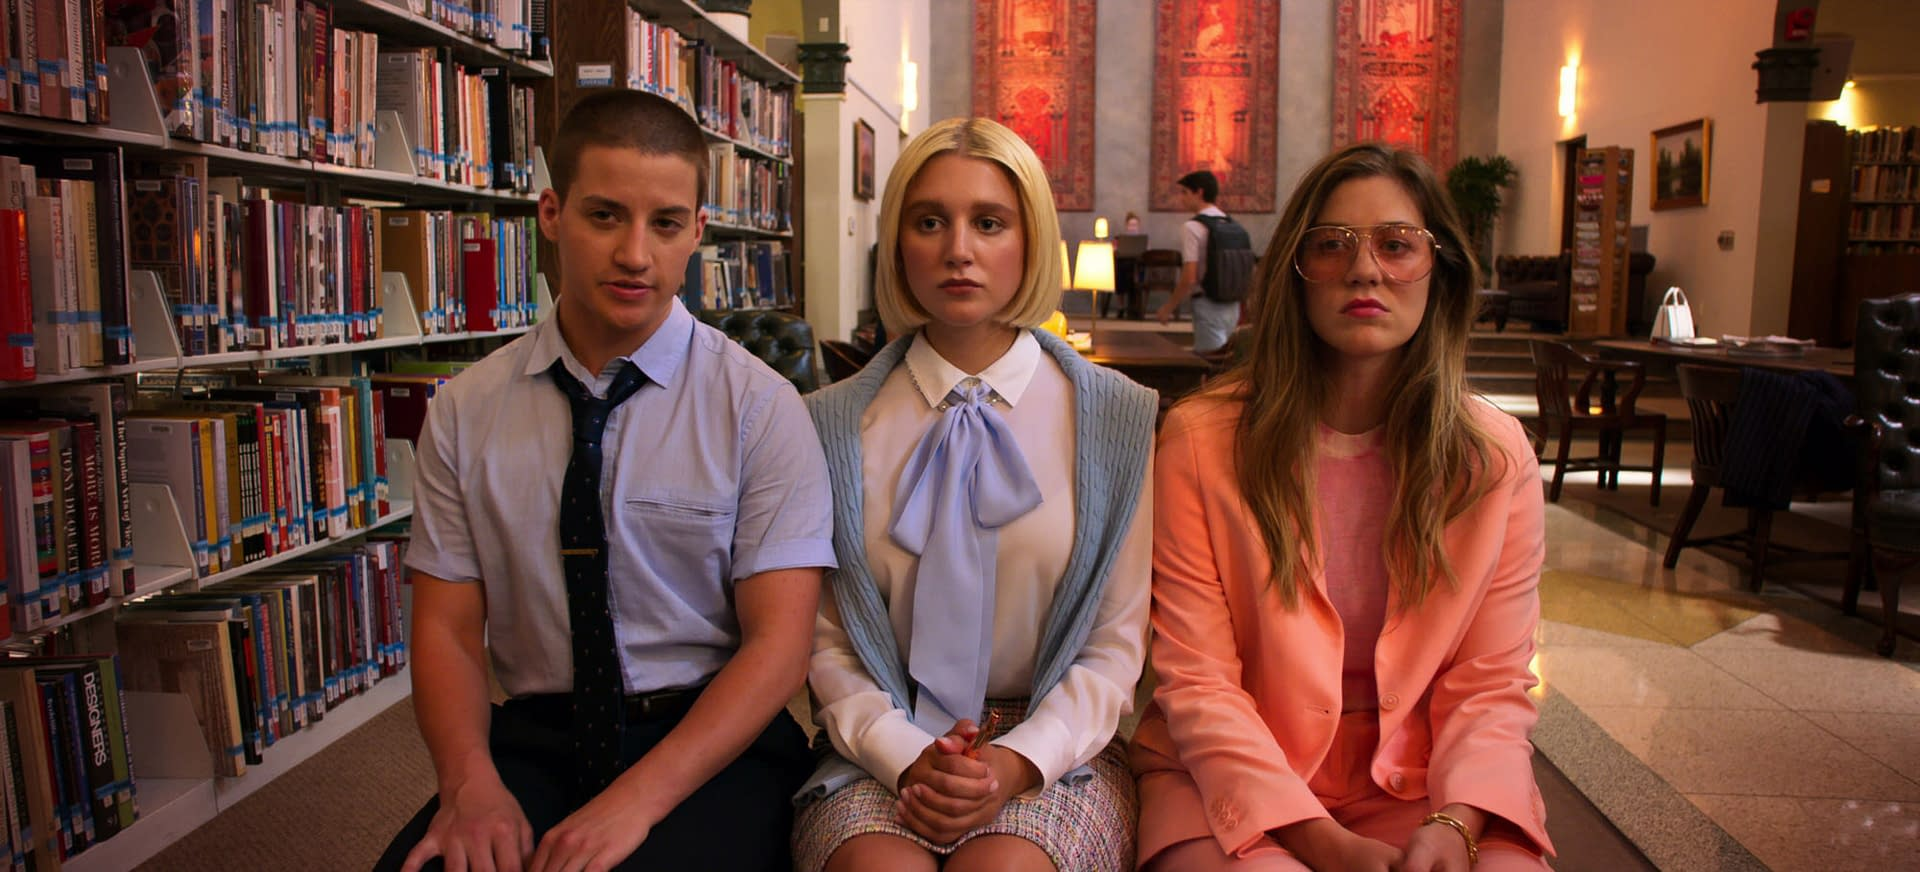 """""""The Politician"""" Cast Explains Ryan Murphy Series in 30 Seconds; New Images Released [VIDEO]"""